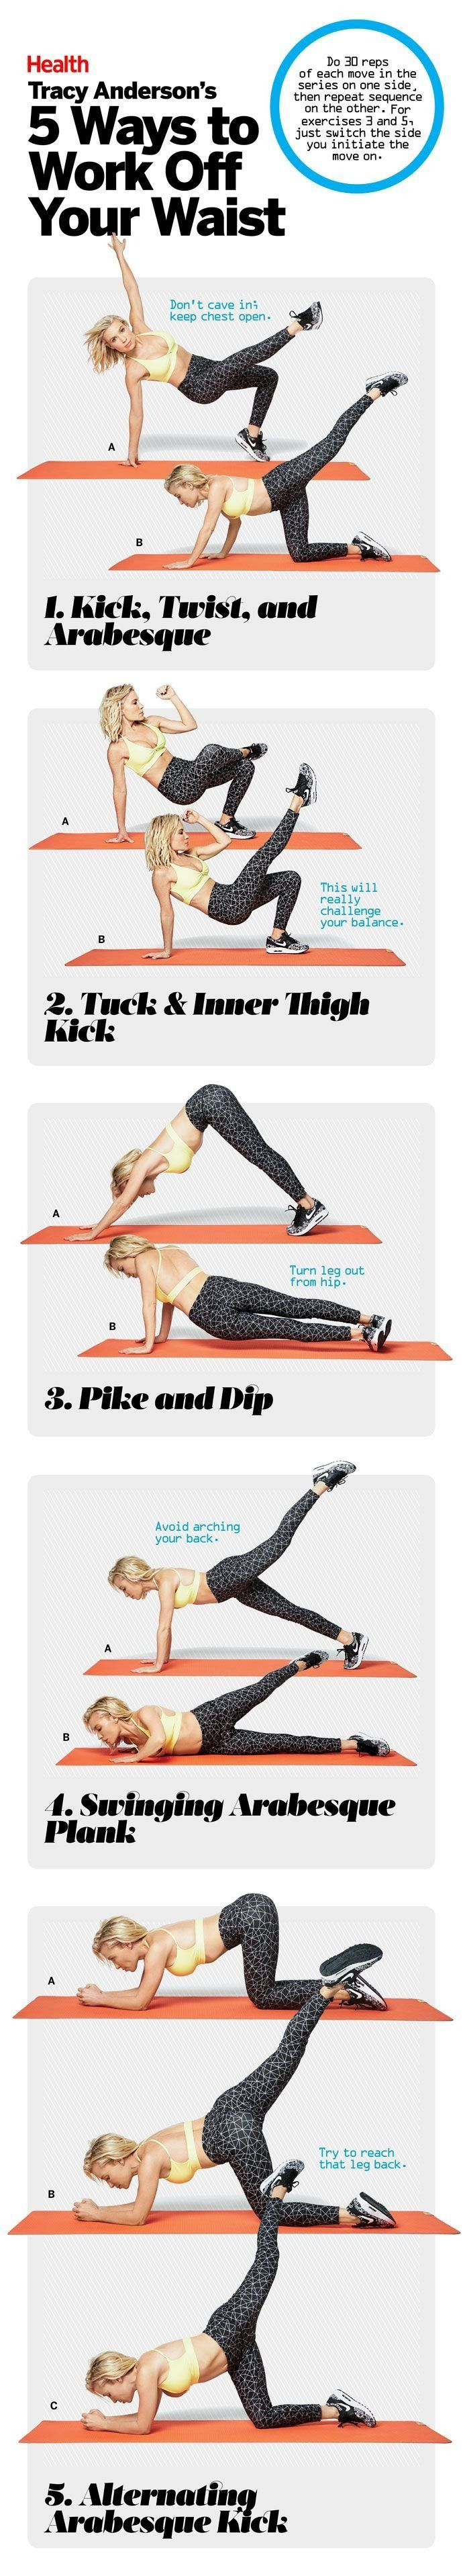 Because Tracy Anderson knows best. Here are 5 of the star trainer's fave exercises to work off your waist.   http://Health.com